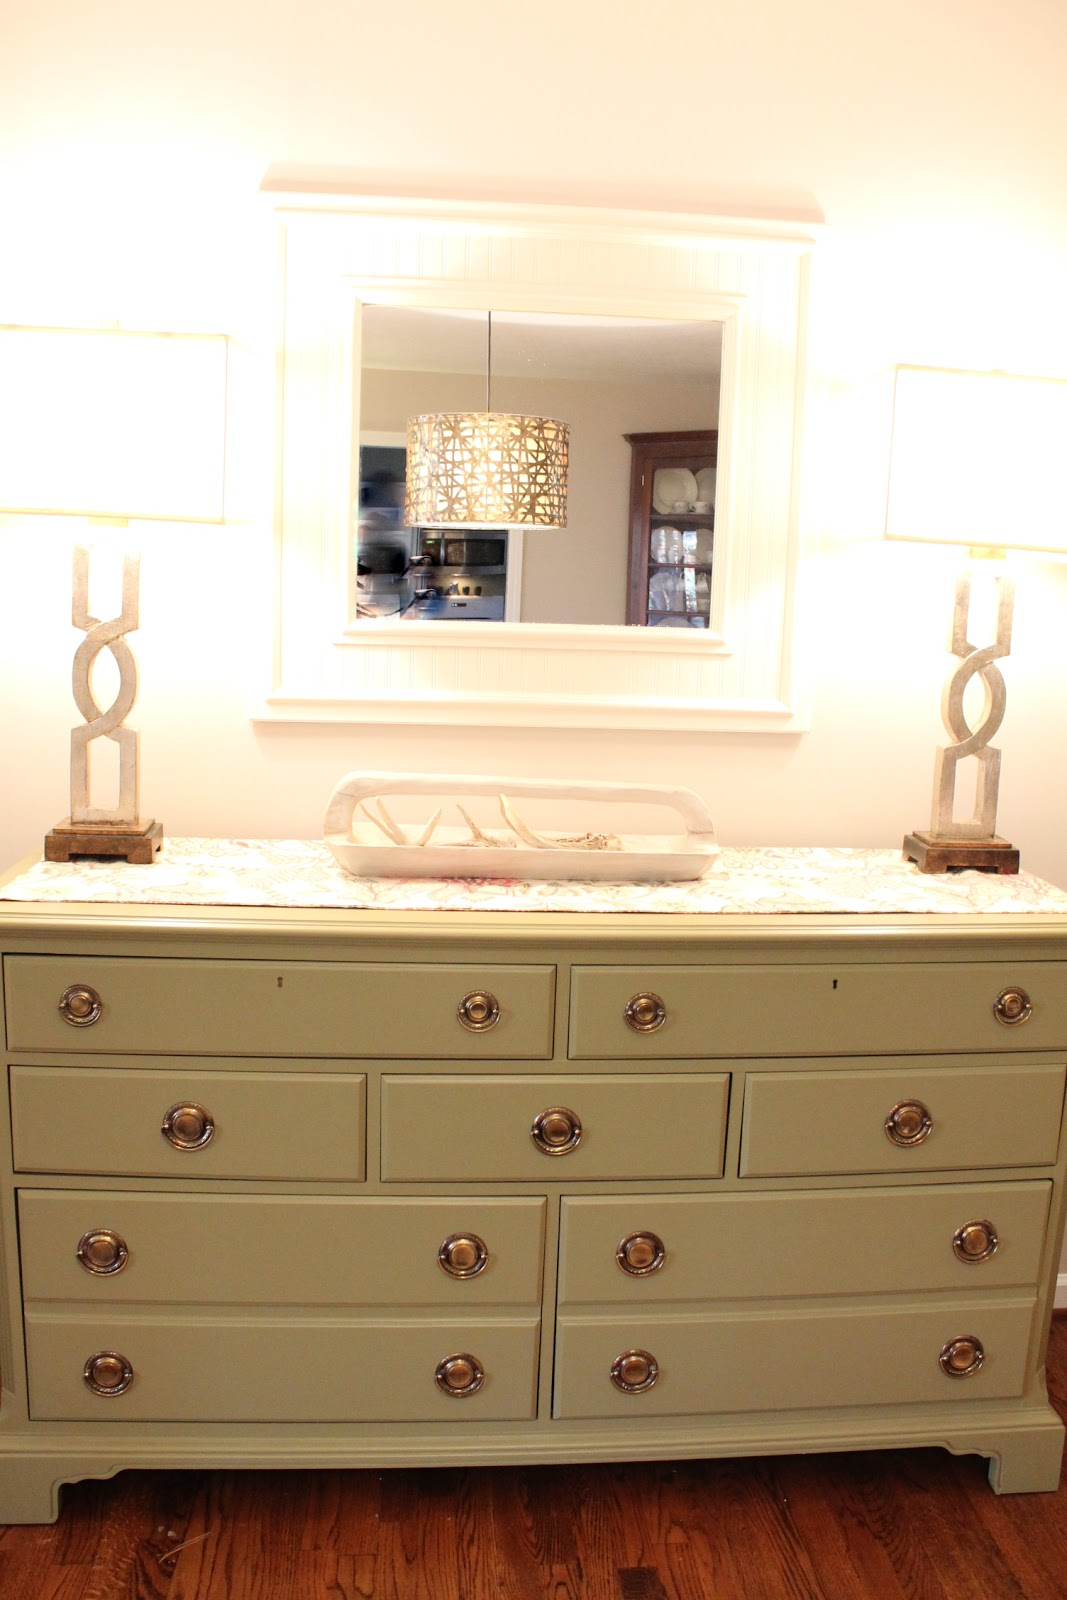 Woven Home: Goodwill Dresser Turned Dining Room Buffet